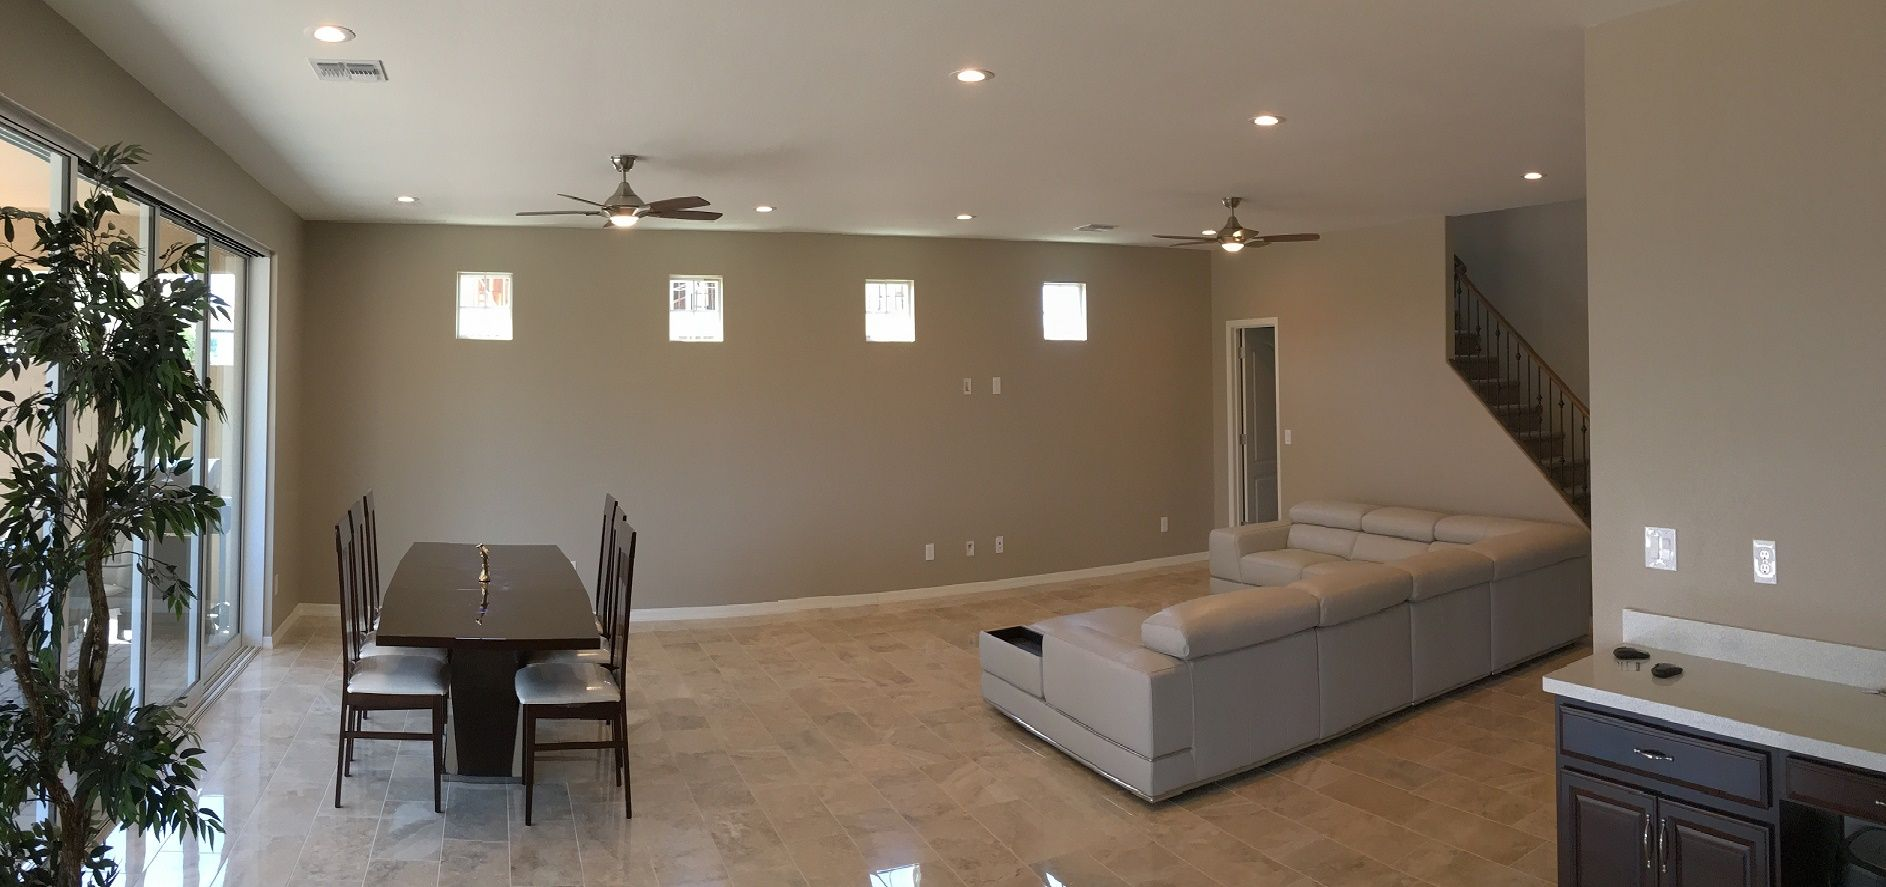 Az Recessed Lighting Installation Of Led Lights And